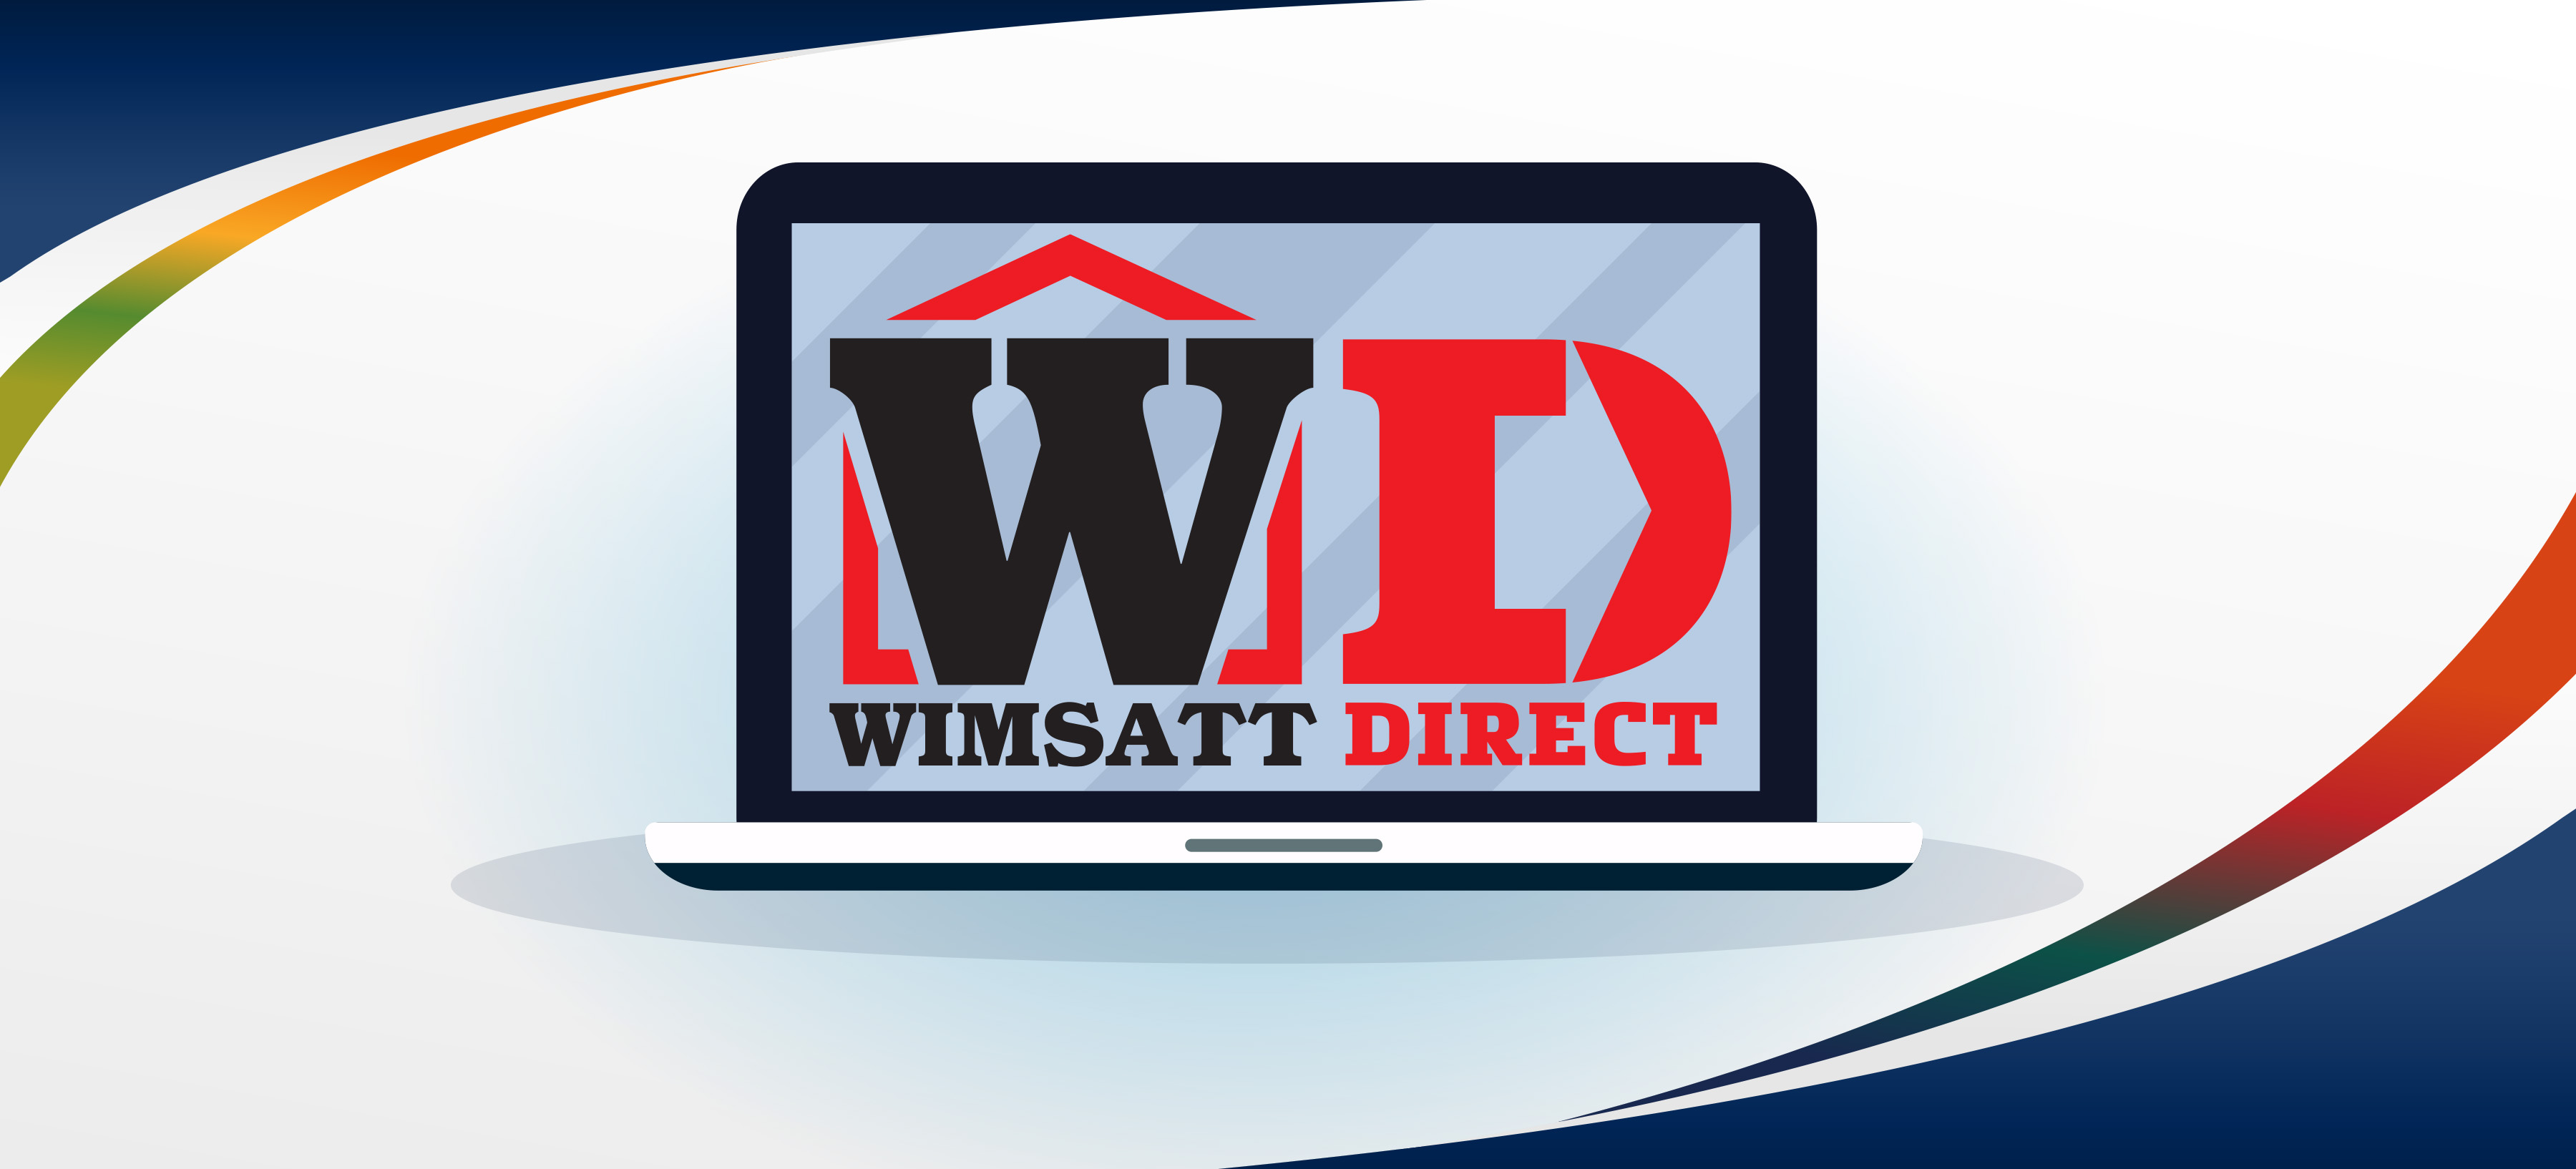 Welcome to WimsattDirect!